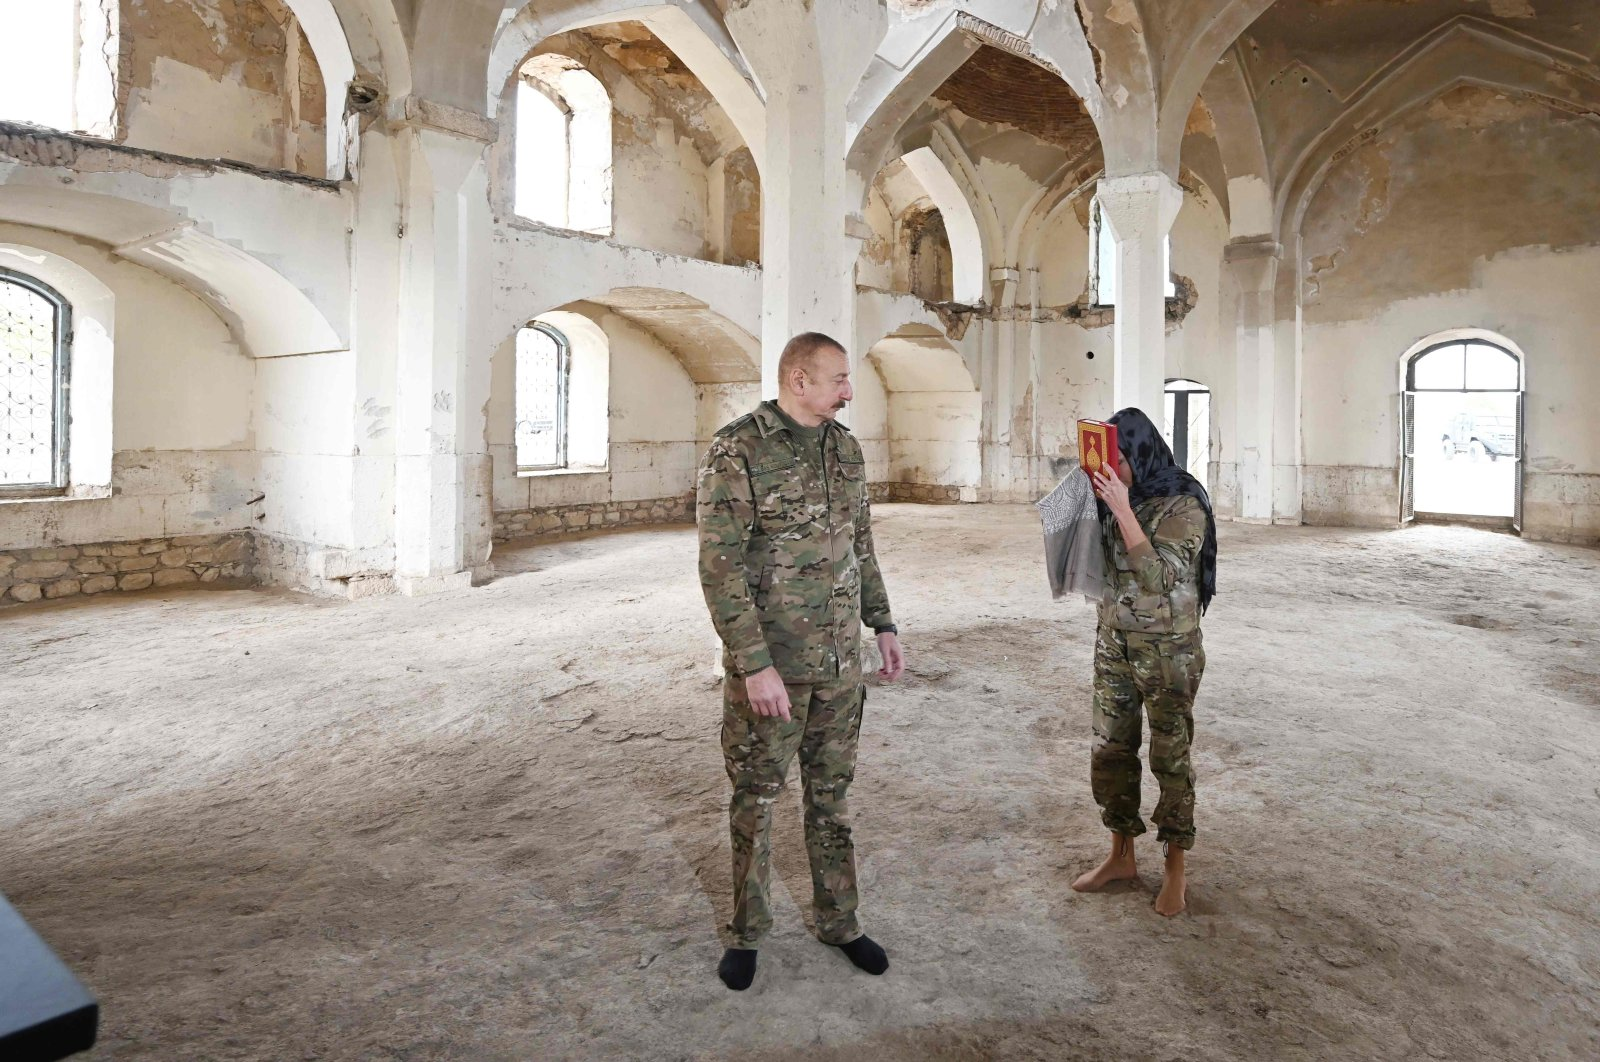 This handout picture by Azerbaijan's Presidency Press Office shows Azerbaijani President Ilham Aliyev and his wife and Azerbaijan's Vice President Mehriban Aliyeva standing inside the Aghdam Mosque in Aghdam, on Nov. 23, 2020. (AFP Photo)